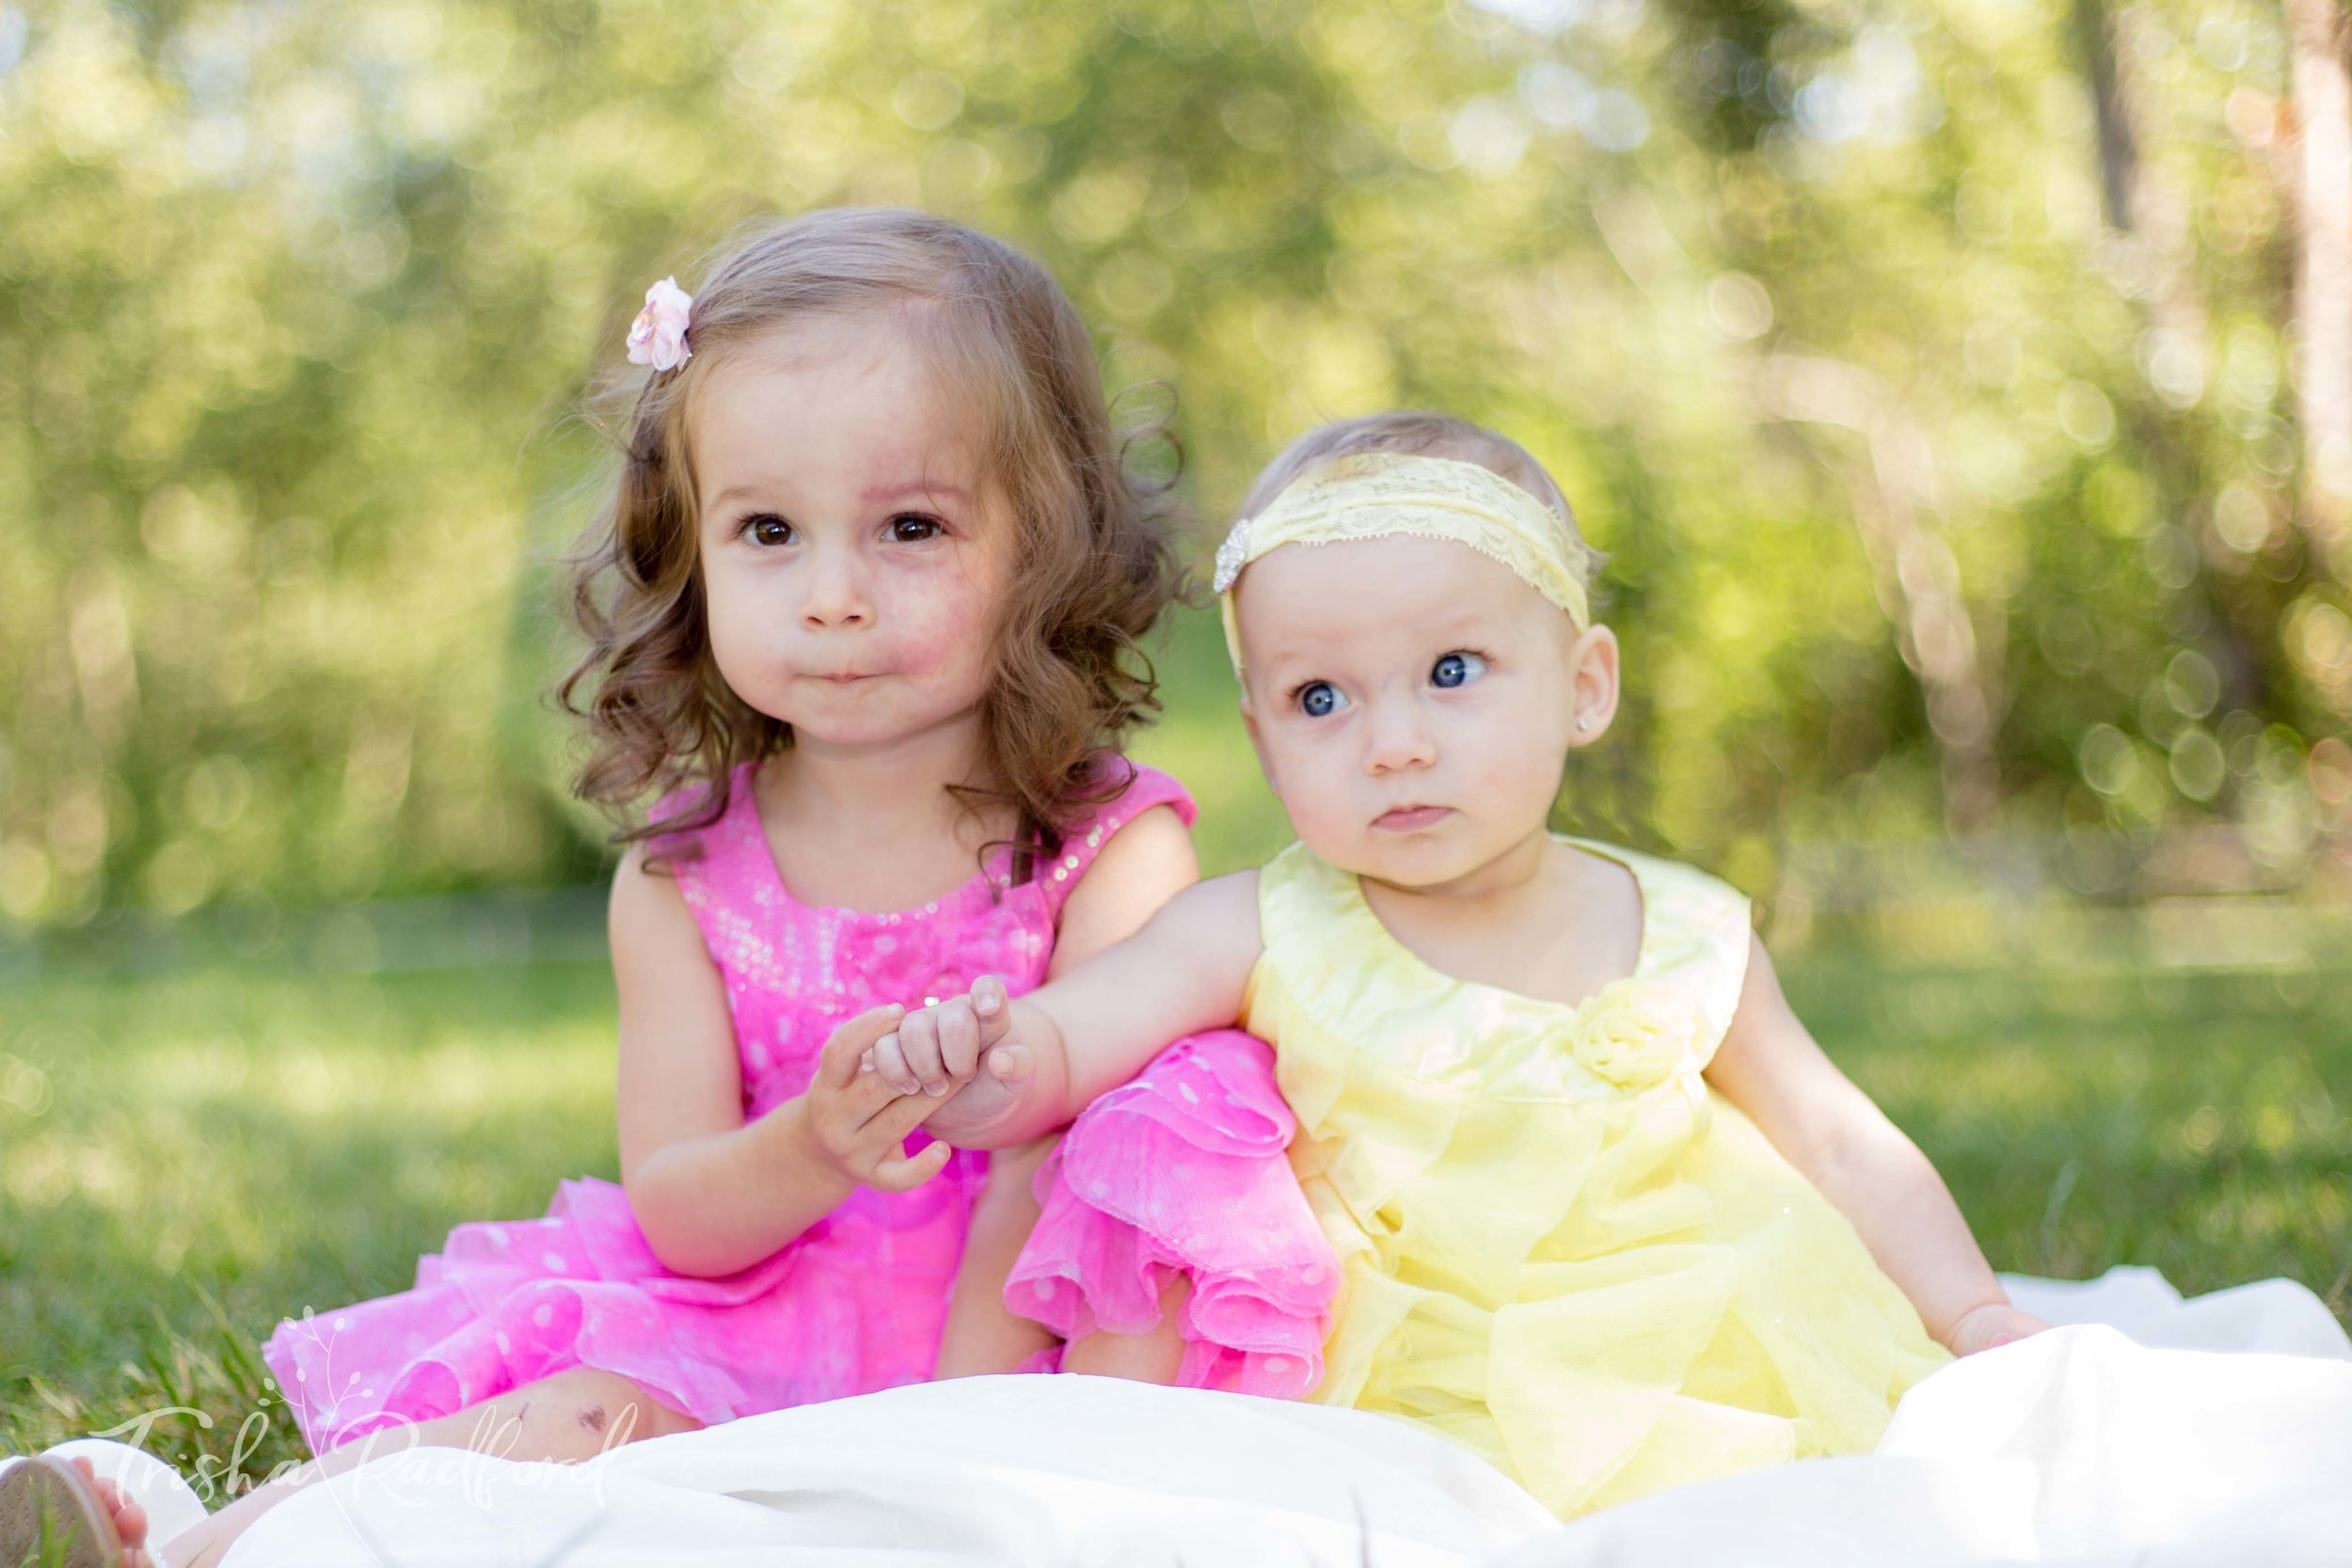 Baby & Toddler Photographer | Snohomish County WA